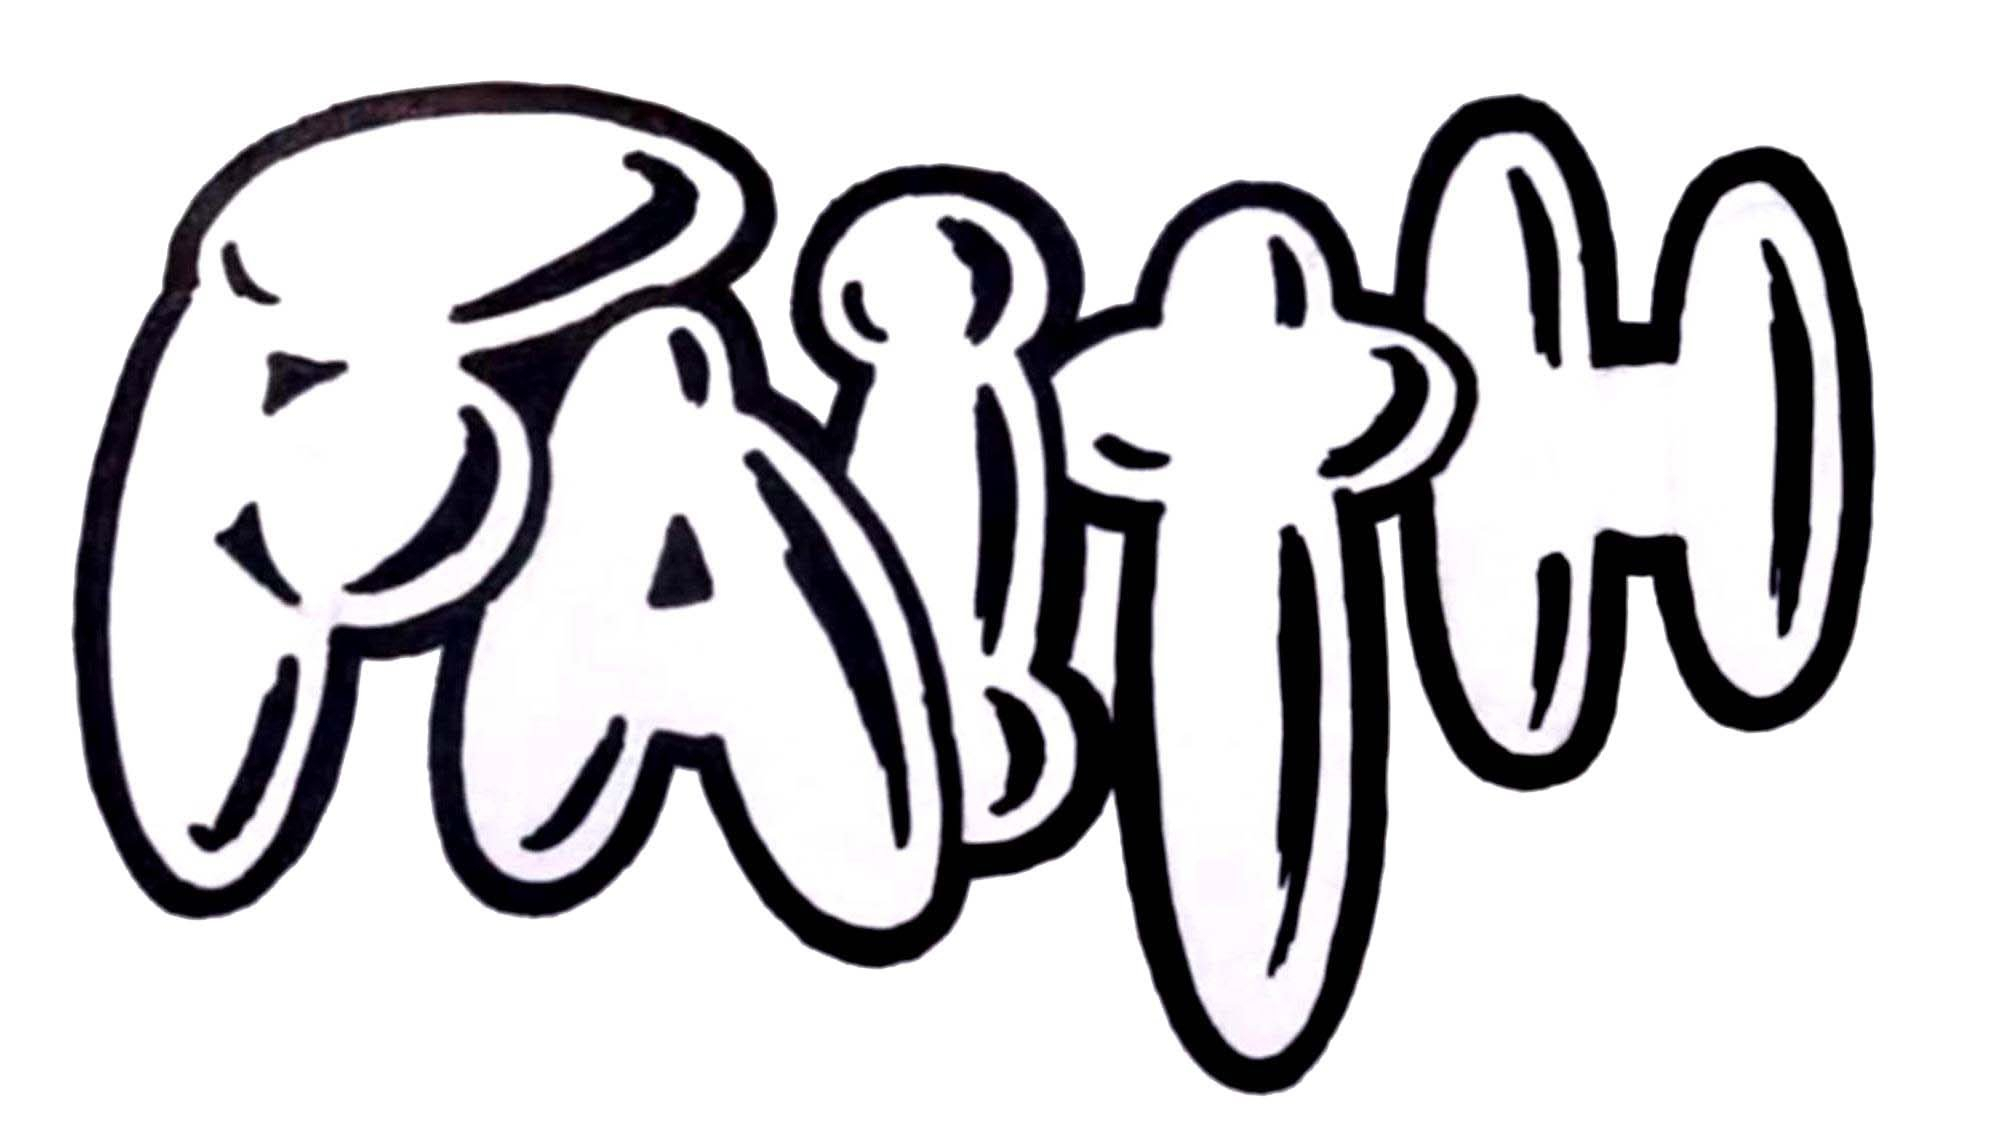 Graffiti clipart peace. Black and white how